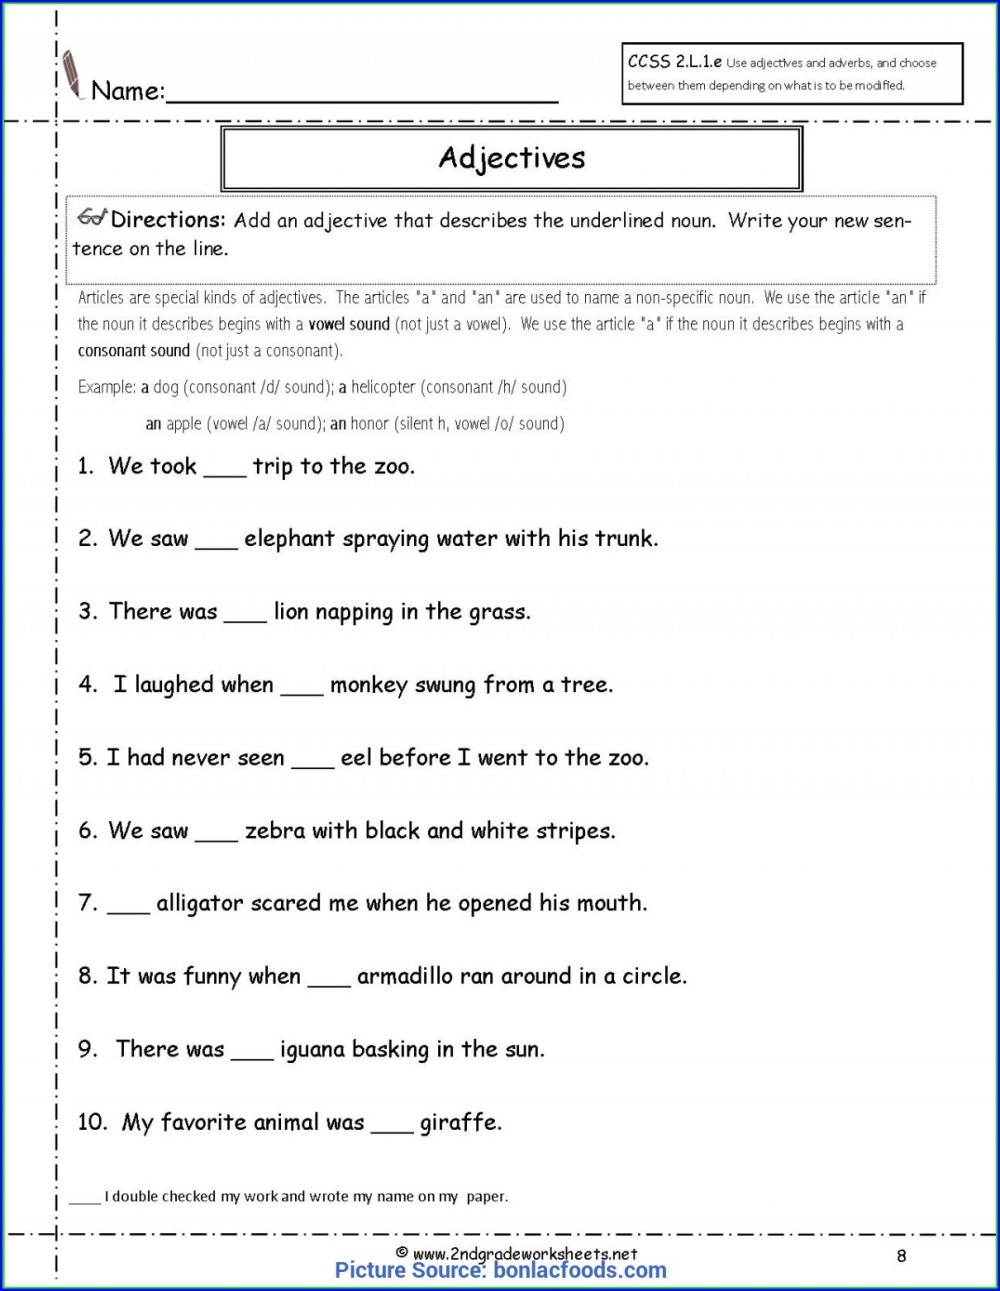 medium resolution of 2nd Grade Adverb Adjective Worksheet   Printable Worksheets and Activities  for Teachers